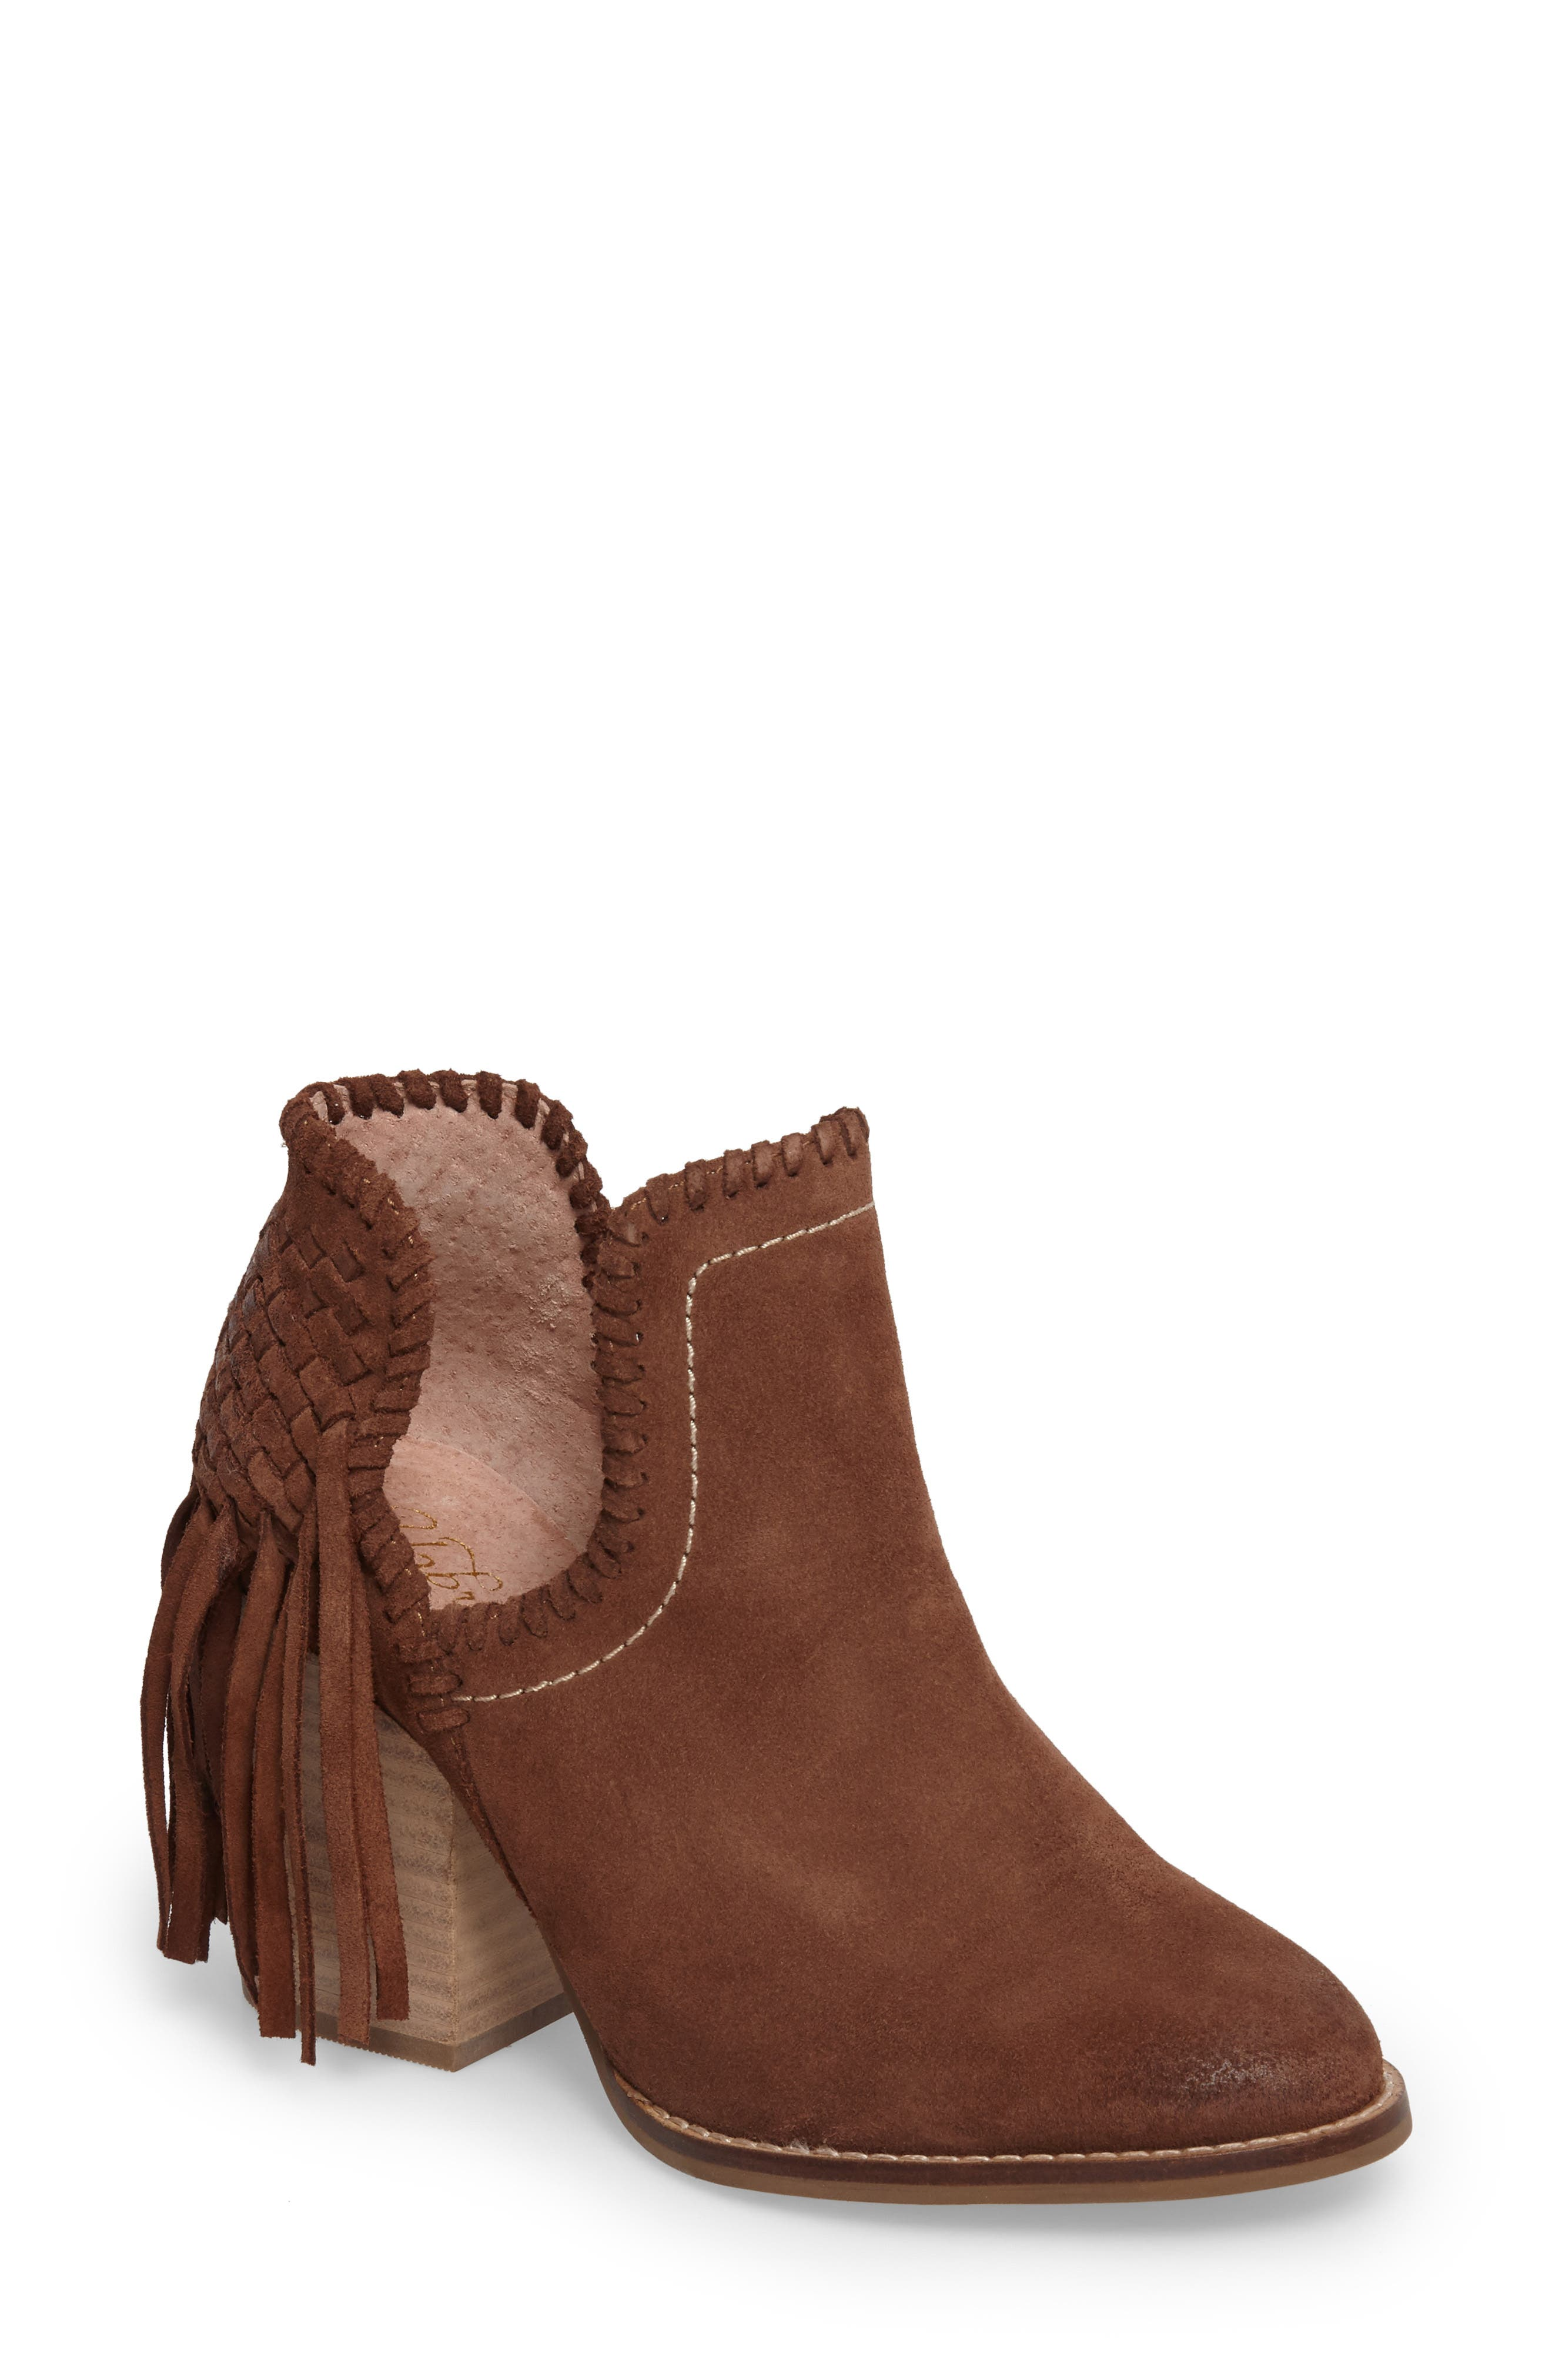 Alternate Image 1 Selected - Ariat Unbridled Lily Bootie (Women)